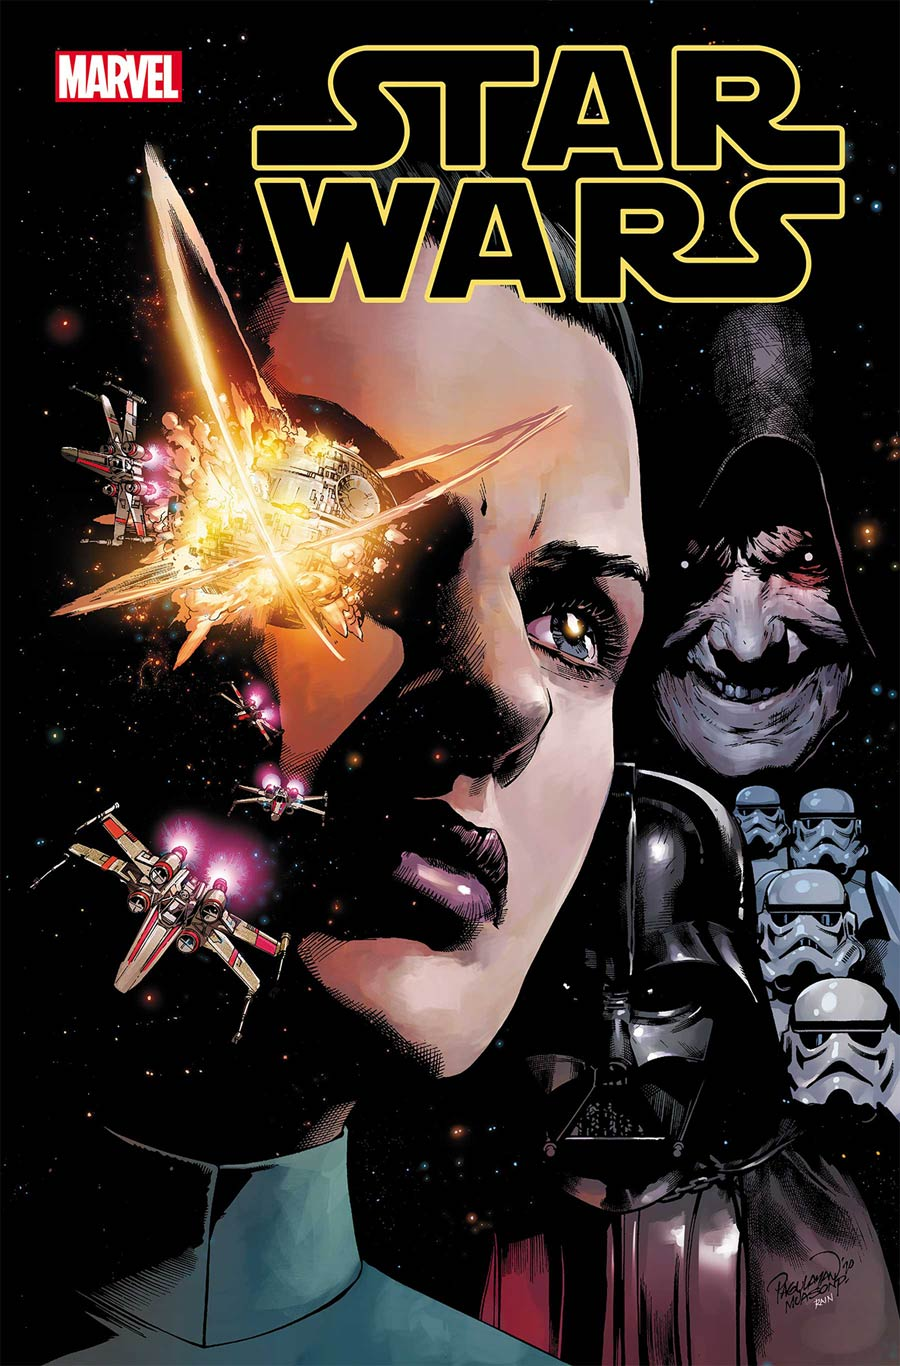 Star Wars Vol 5 #8 Cover A Regular Carlo Pagulayan Cover